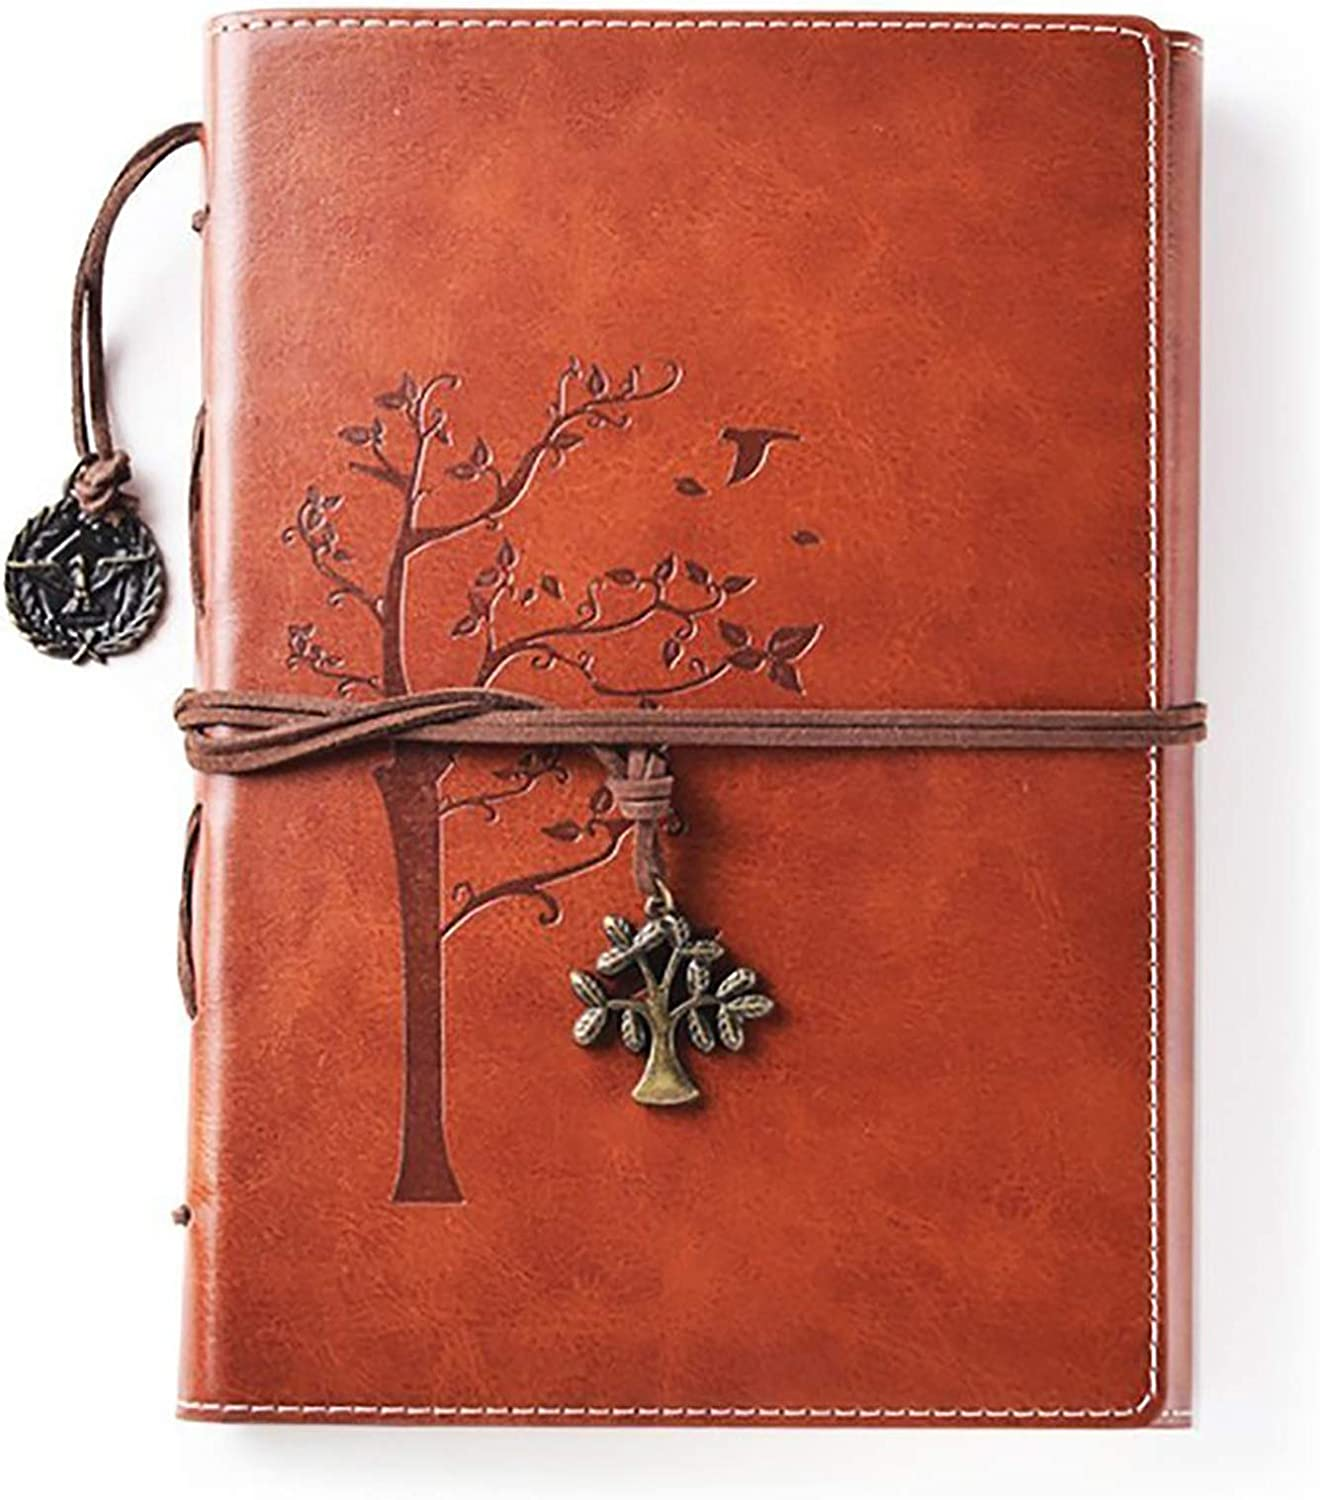 Blank Faux Leather Writing Journal- Tree of Life Refillable Personal Diary -Brown Vegan leather Notebook with Unlined A5 Slim Pages–Vintage Writing Gifts for Men & Women, Travellers, Writers